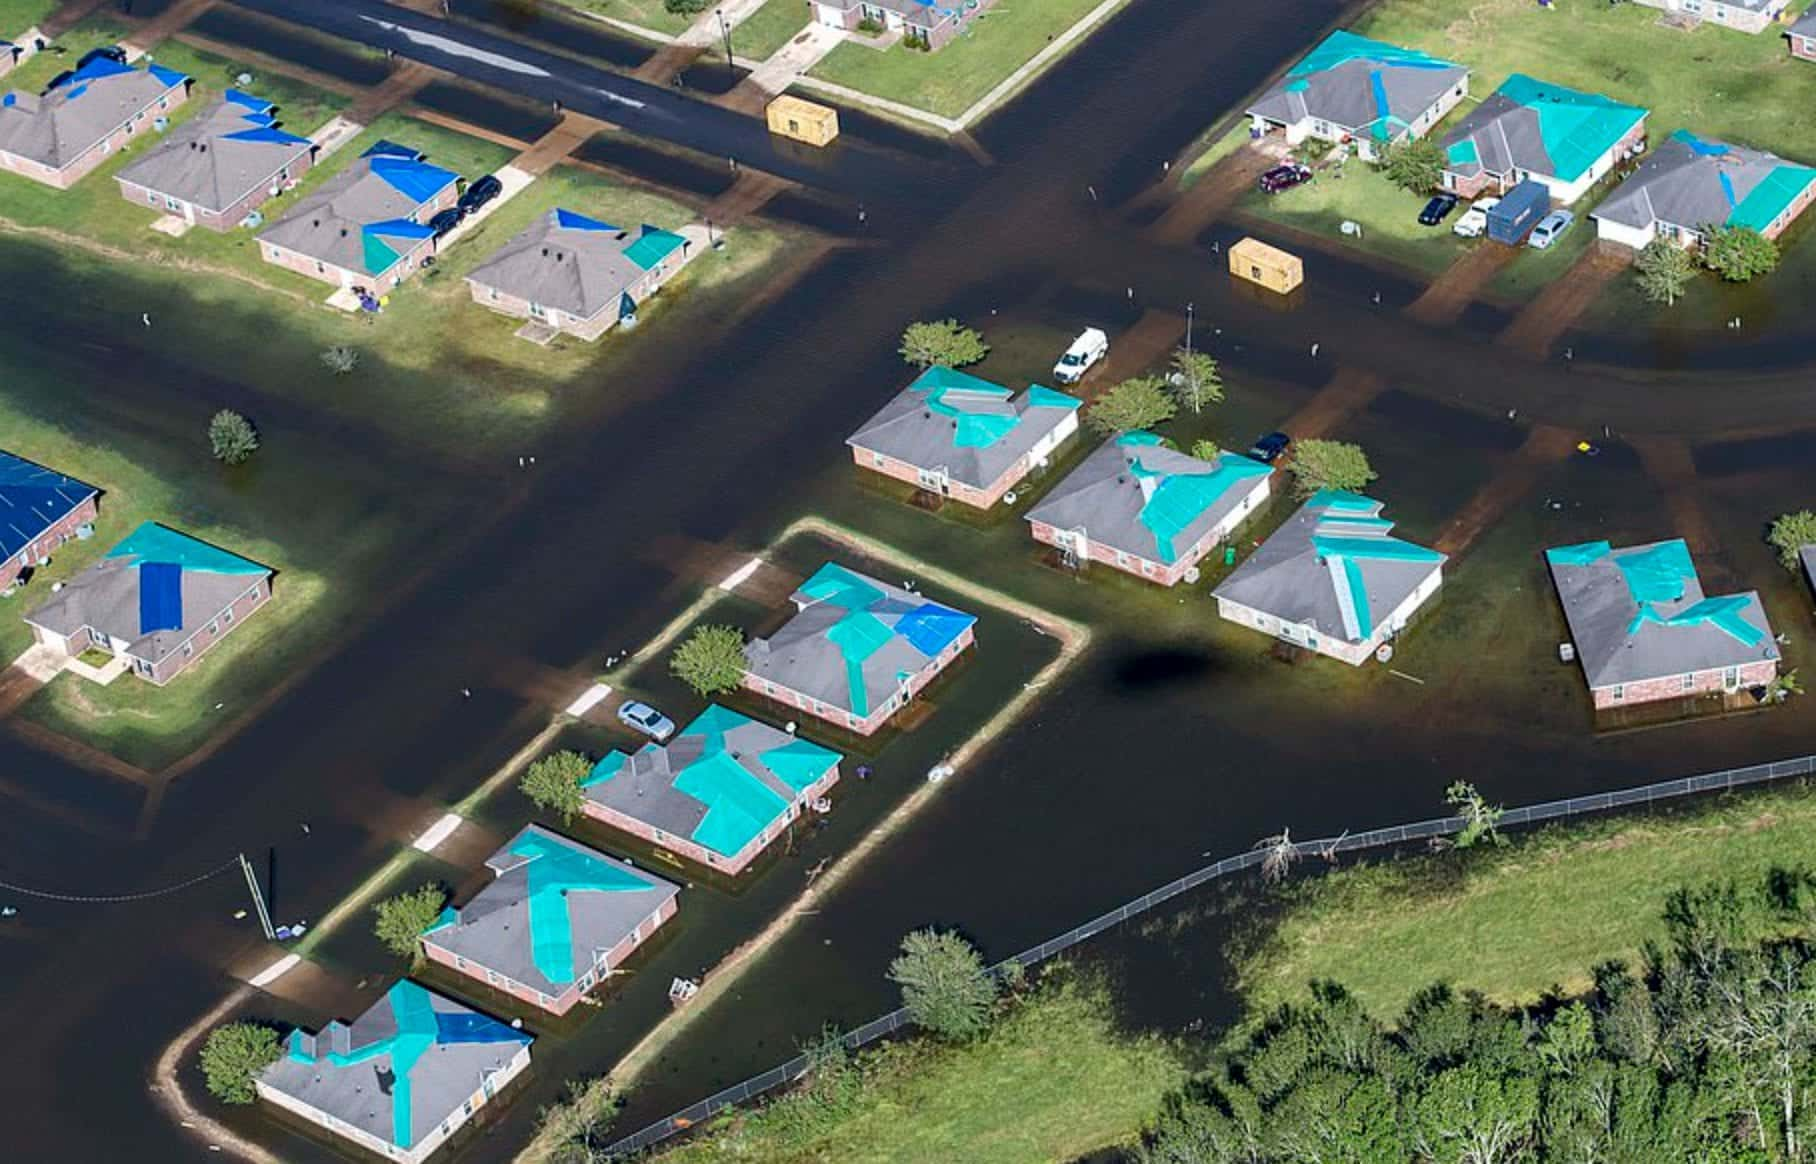 Drone footage shows the devastation in the wake of hurricanes Delta and Laura